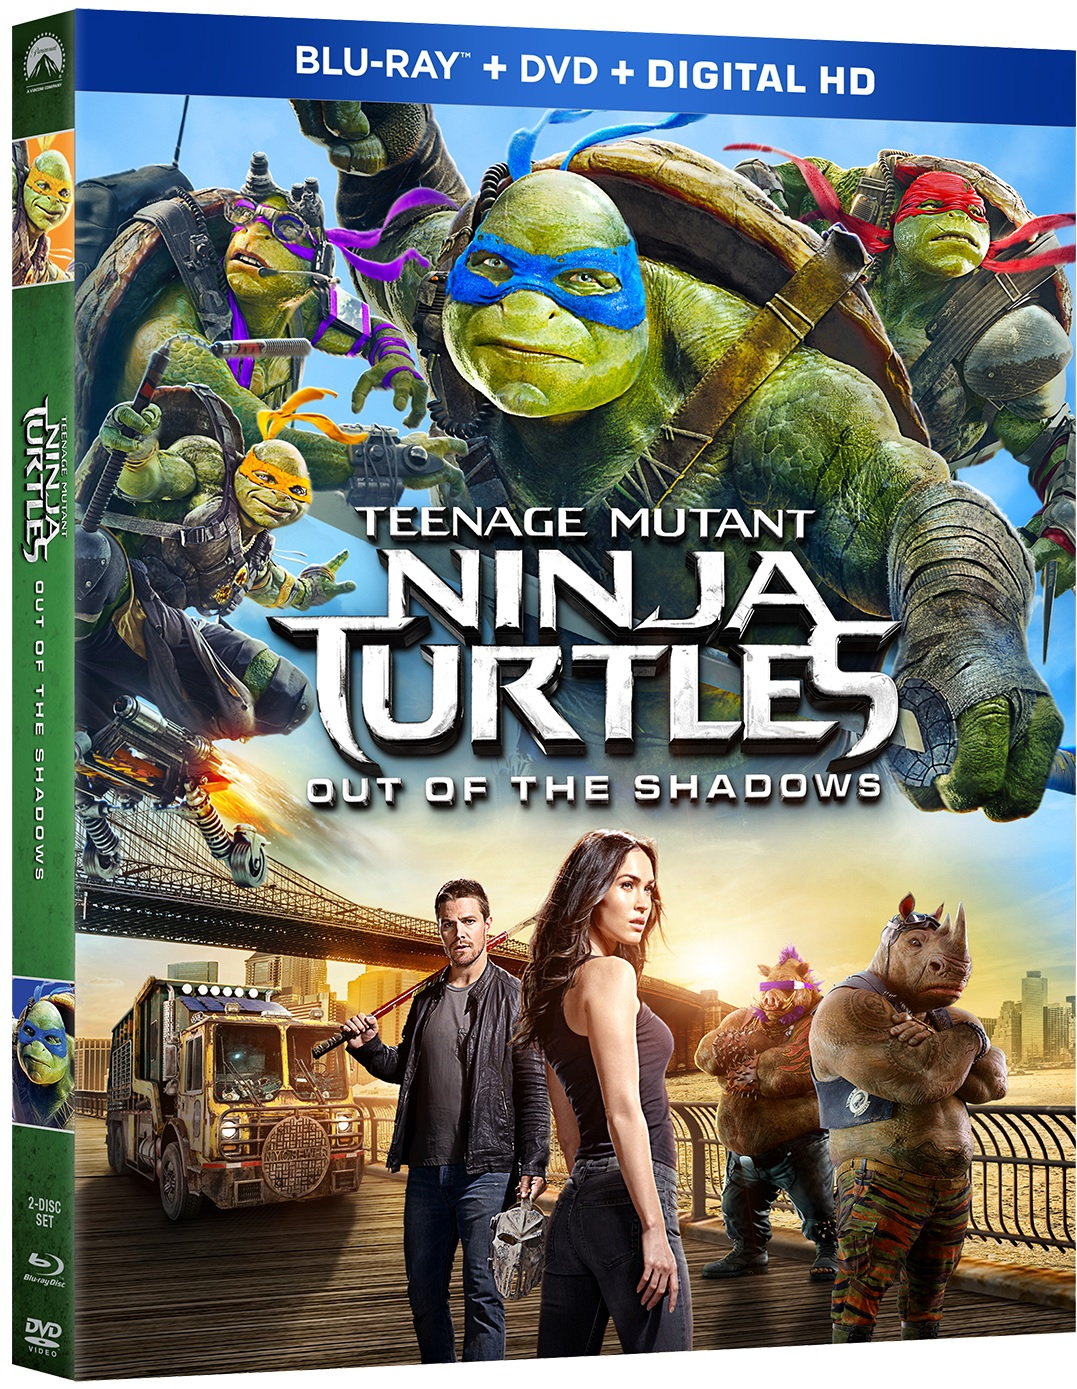 Teenage Mutant Ninja Turtles Out of The Shadows Blu-ray Review